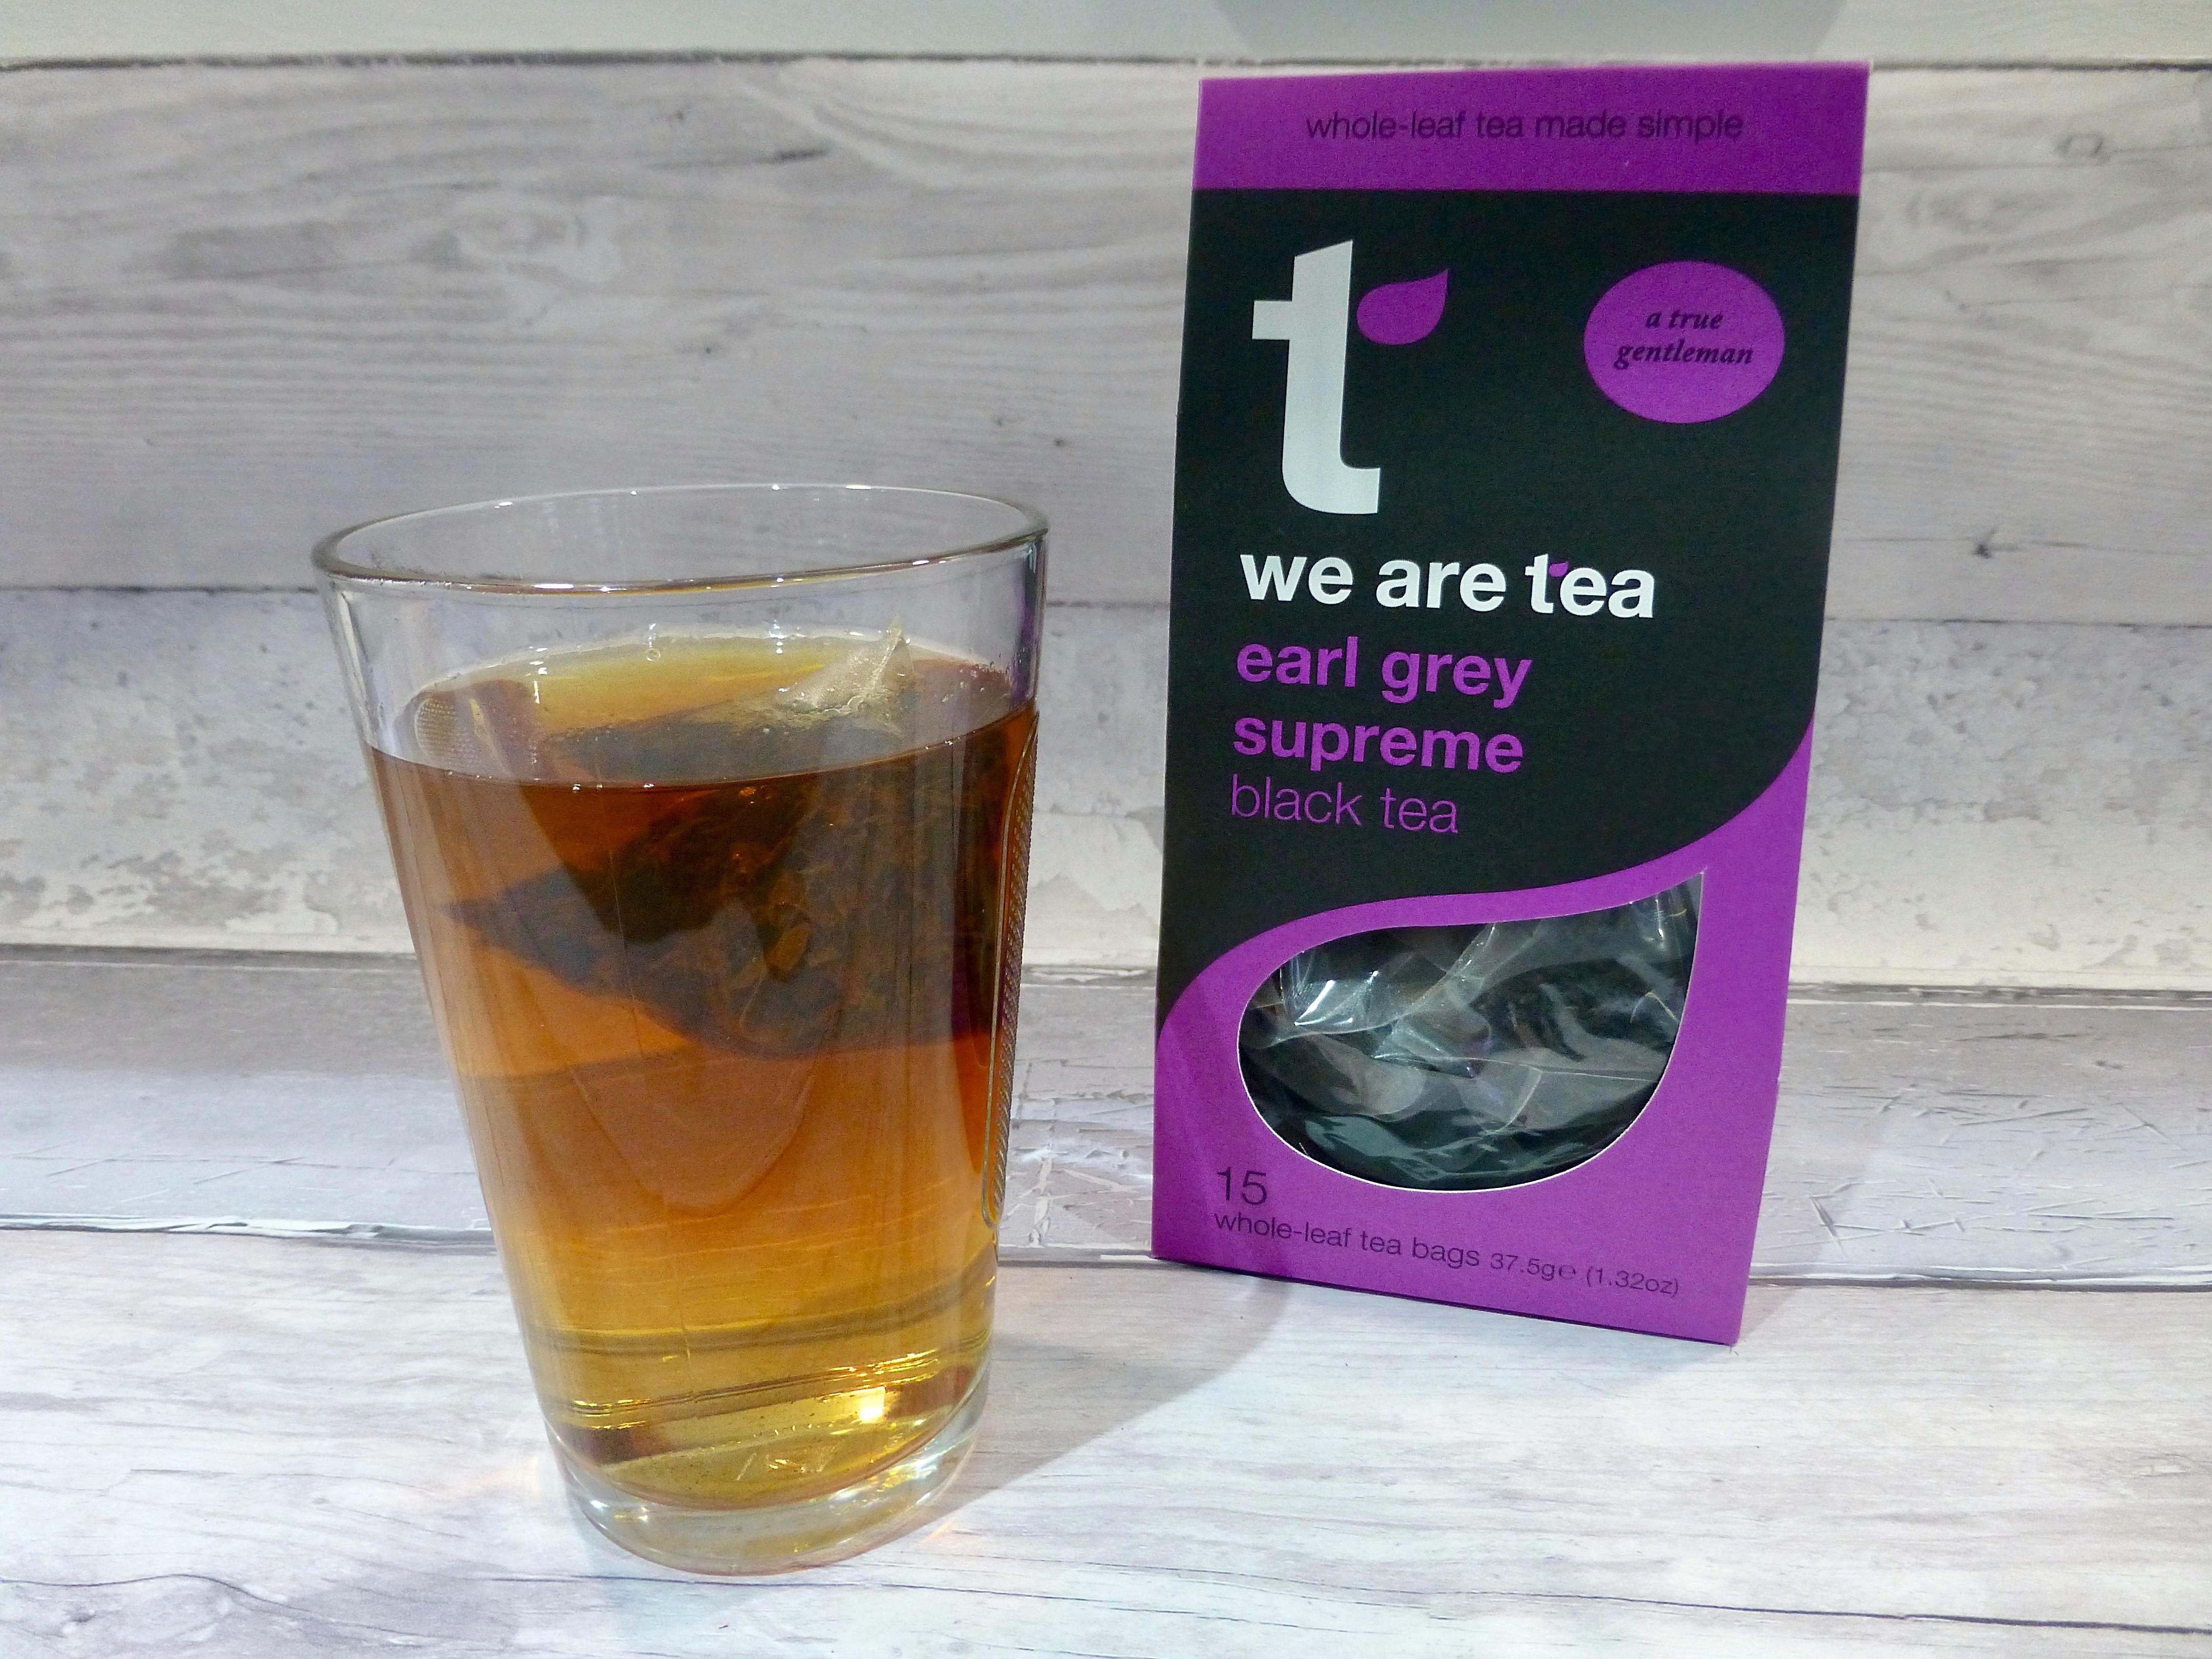 We Are Tea Earl Grey Supreme Black Tea